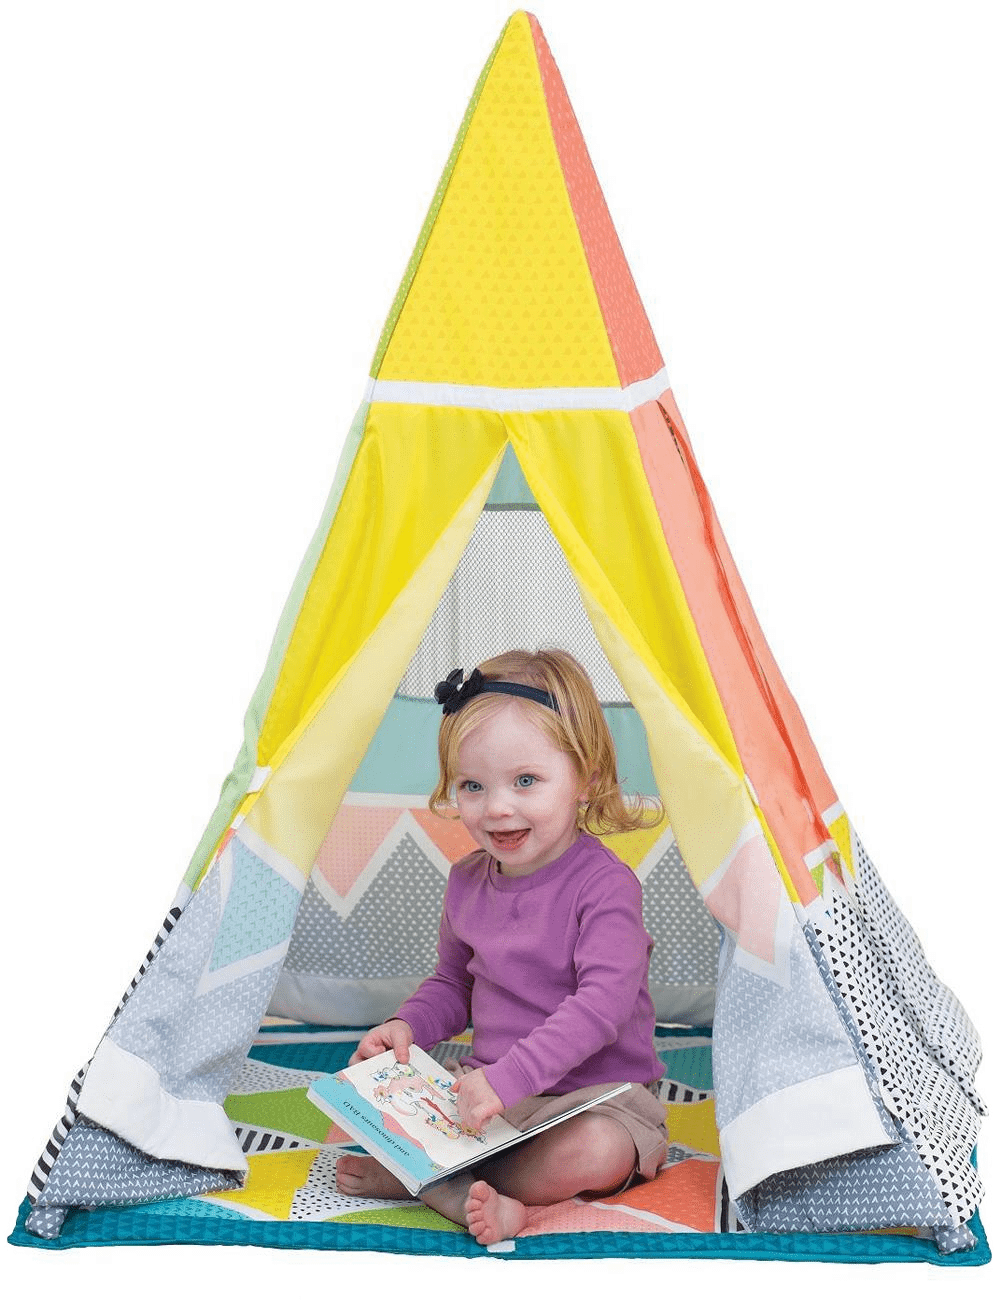 Infantino Grow With Me Playtime Teepee Gym